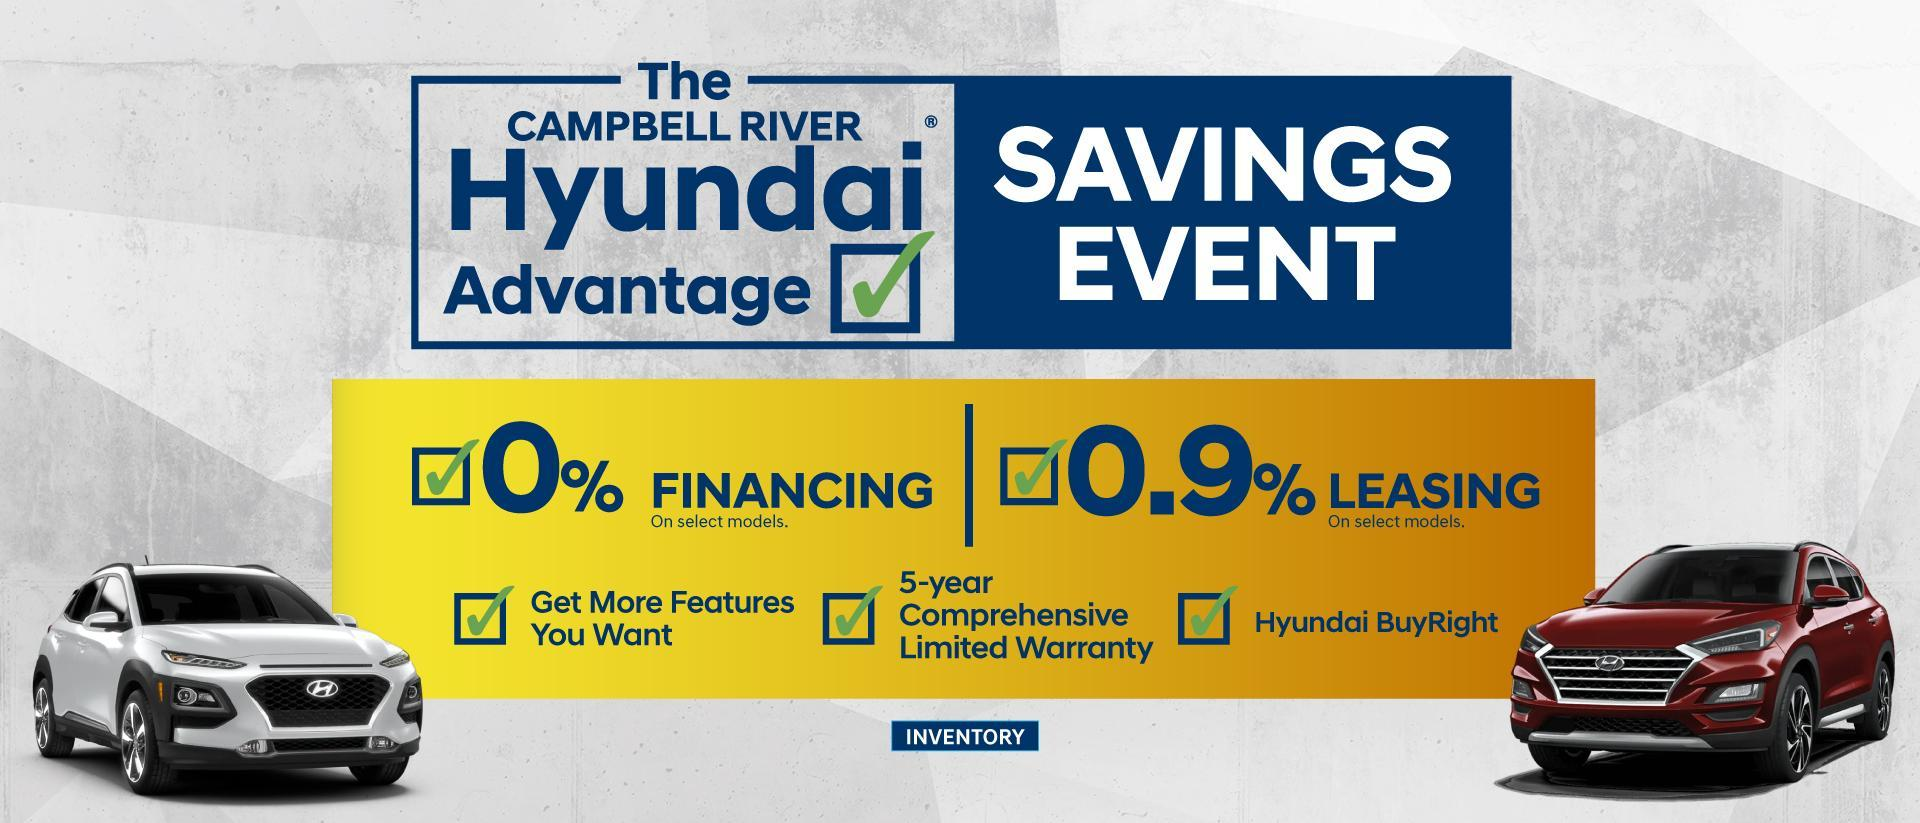 AdvantageEvent_CampbellRiverHyundai_March